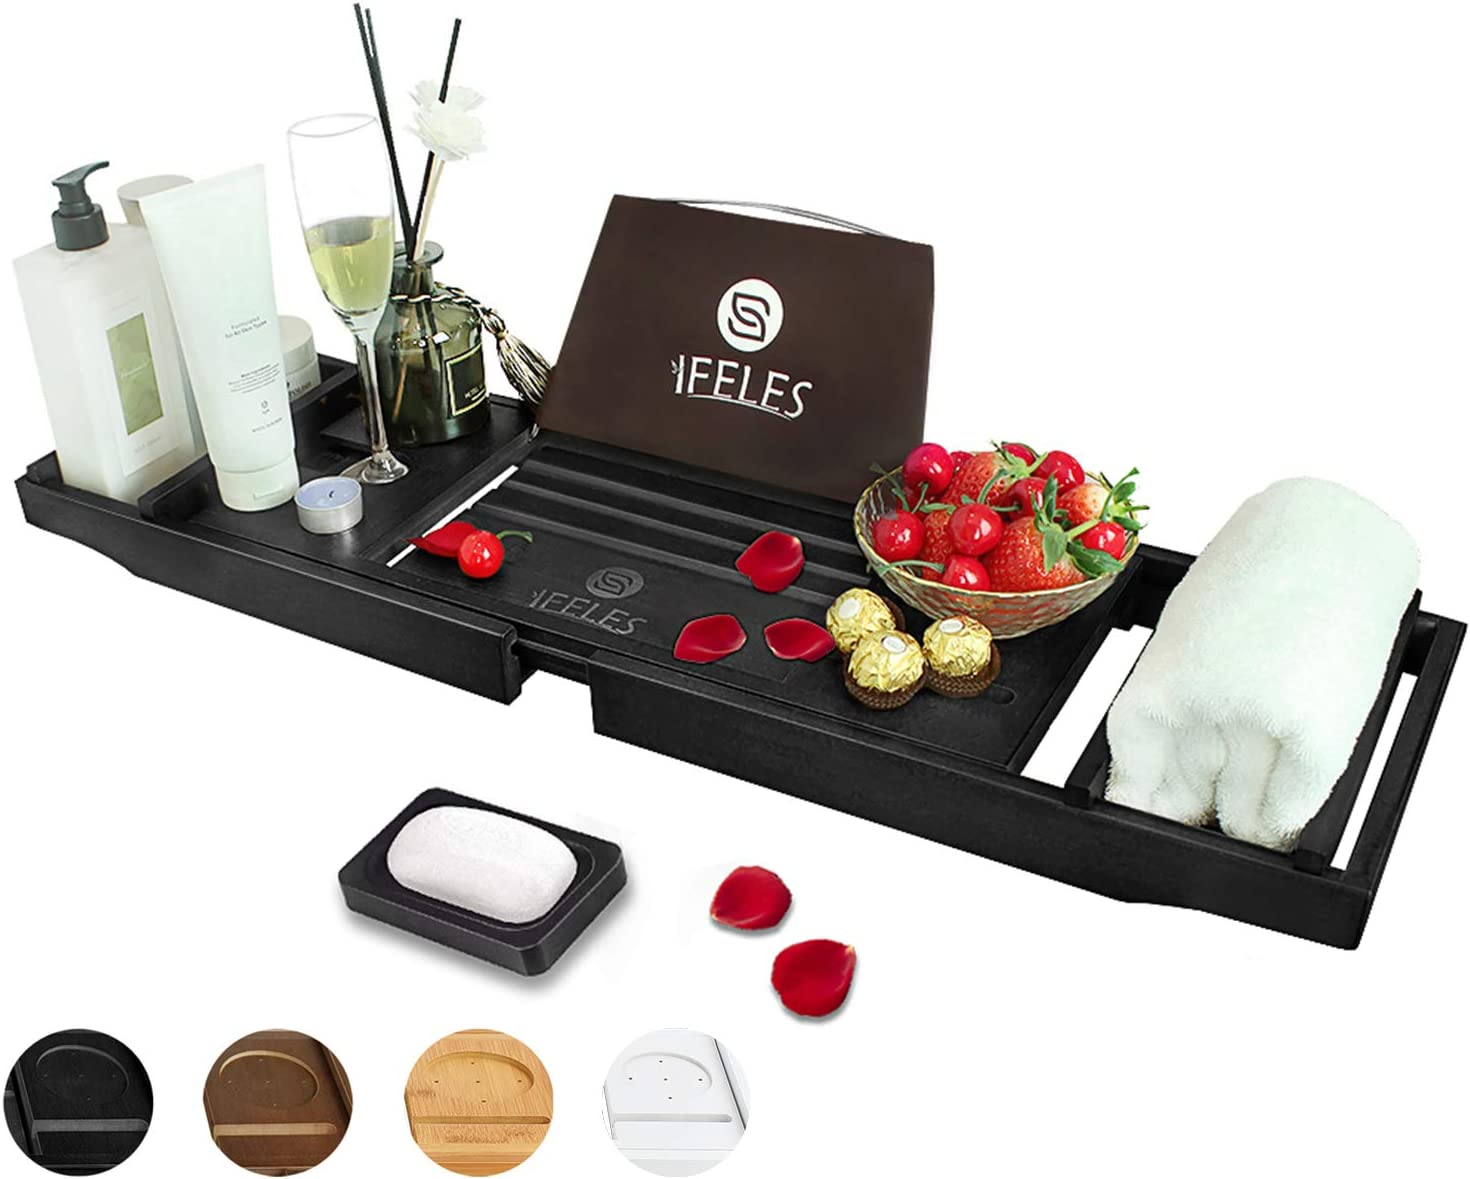 IFELES Luxury Bathtub Caddy Tray, One or Two Person Bath and Bed Tray, Bonus Free Soap Holder (Black Bamboo Color…: Kitchen & Dining